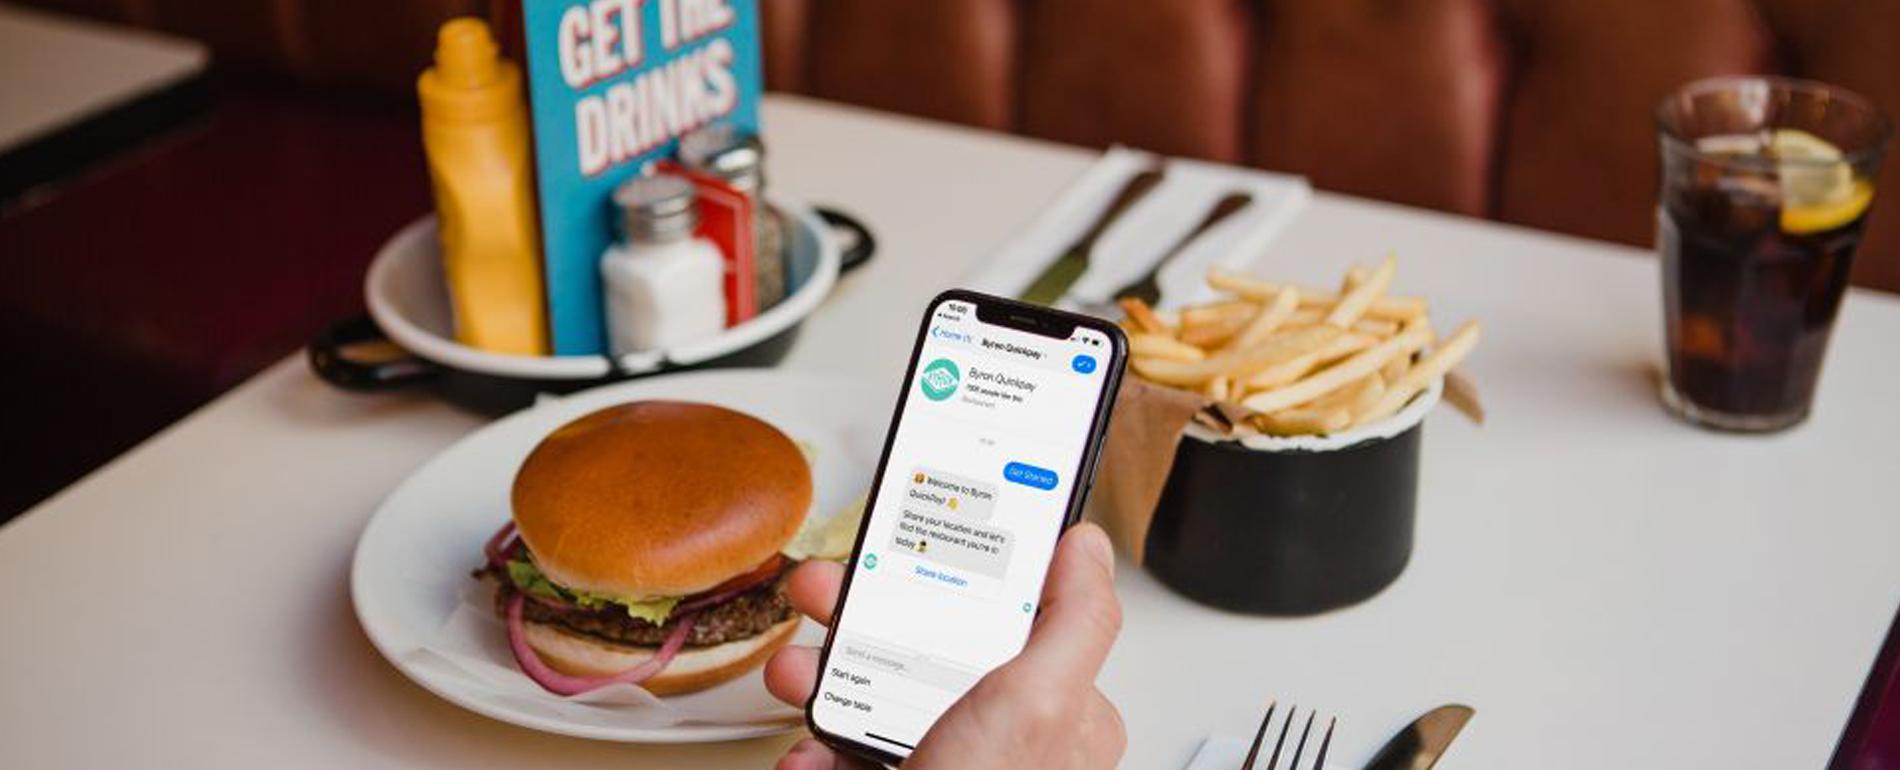 Restaurants in 2019: Striking The Right Balance Between Staff and Technology